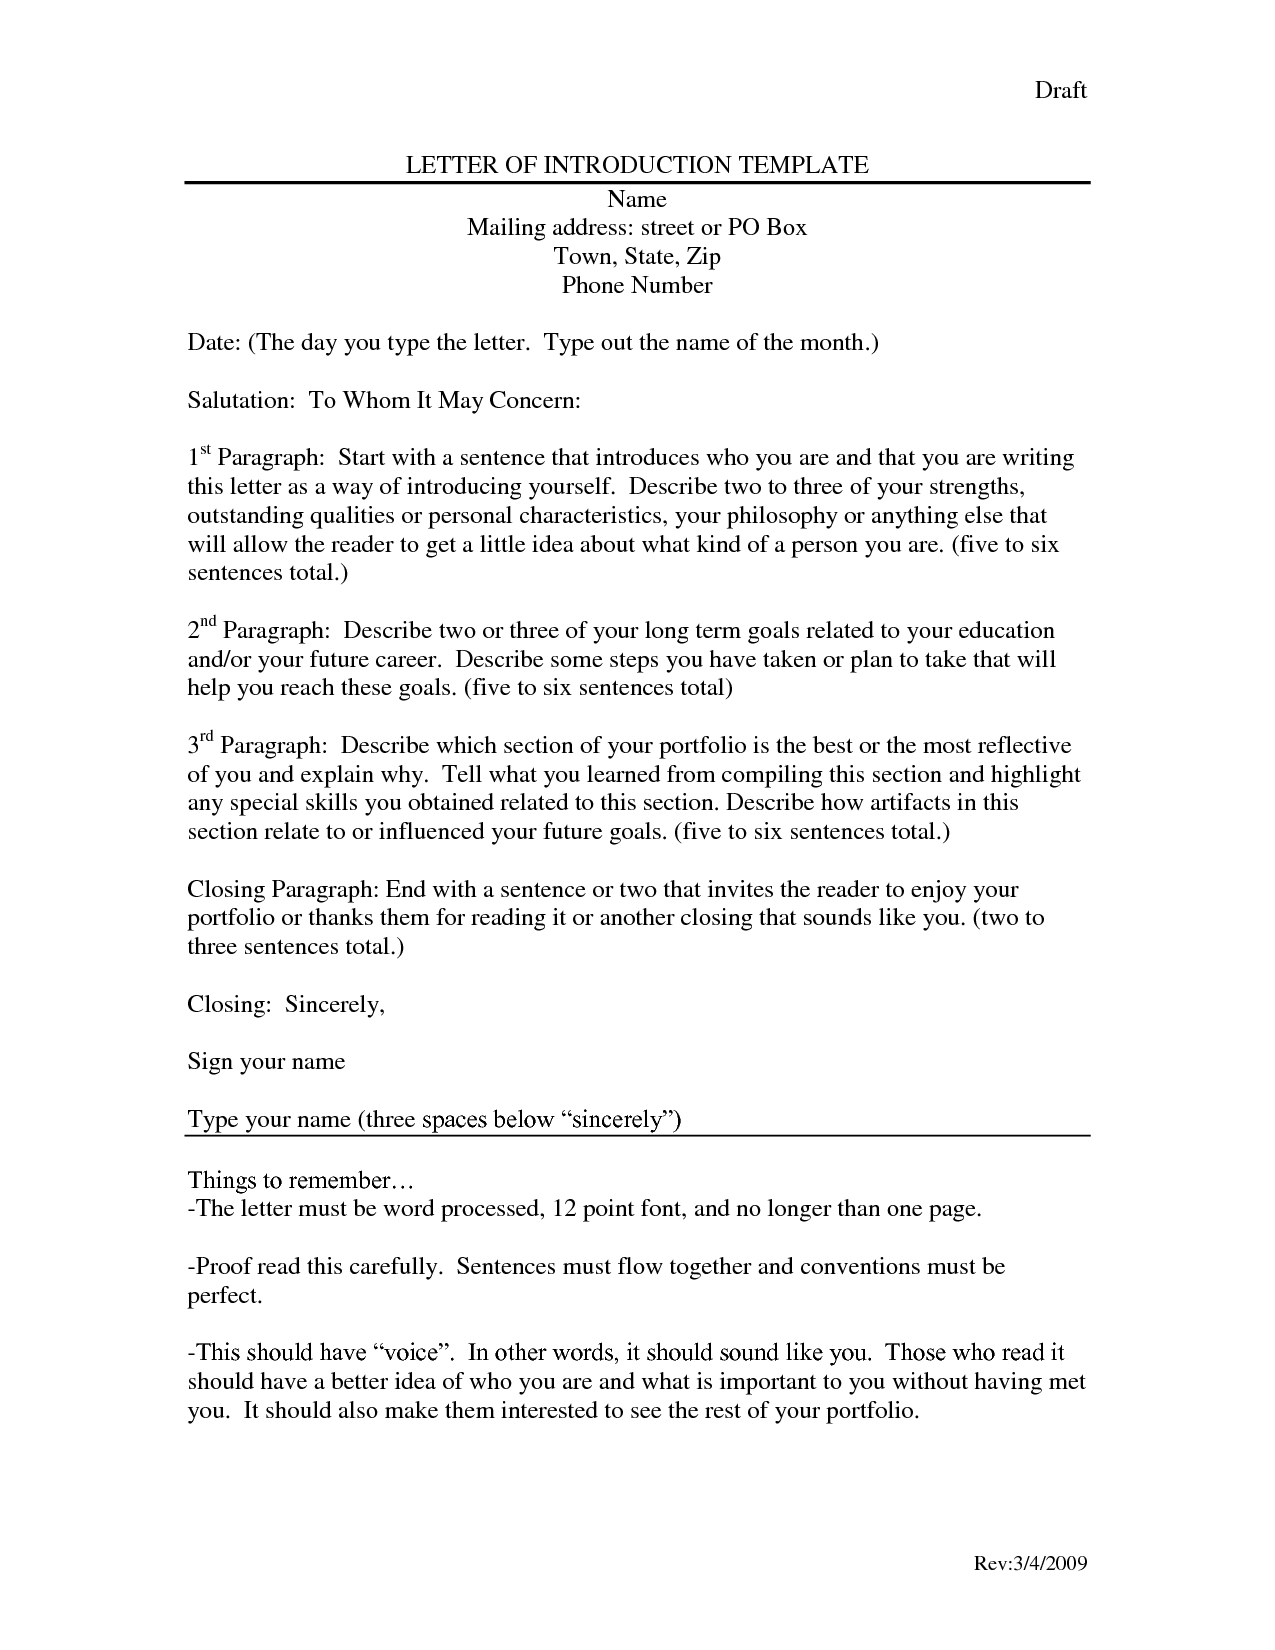 resume intro letter